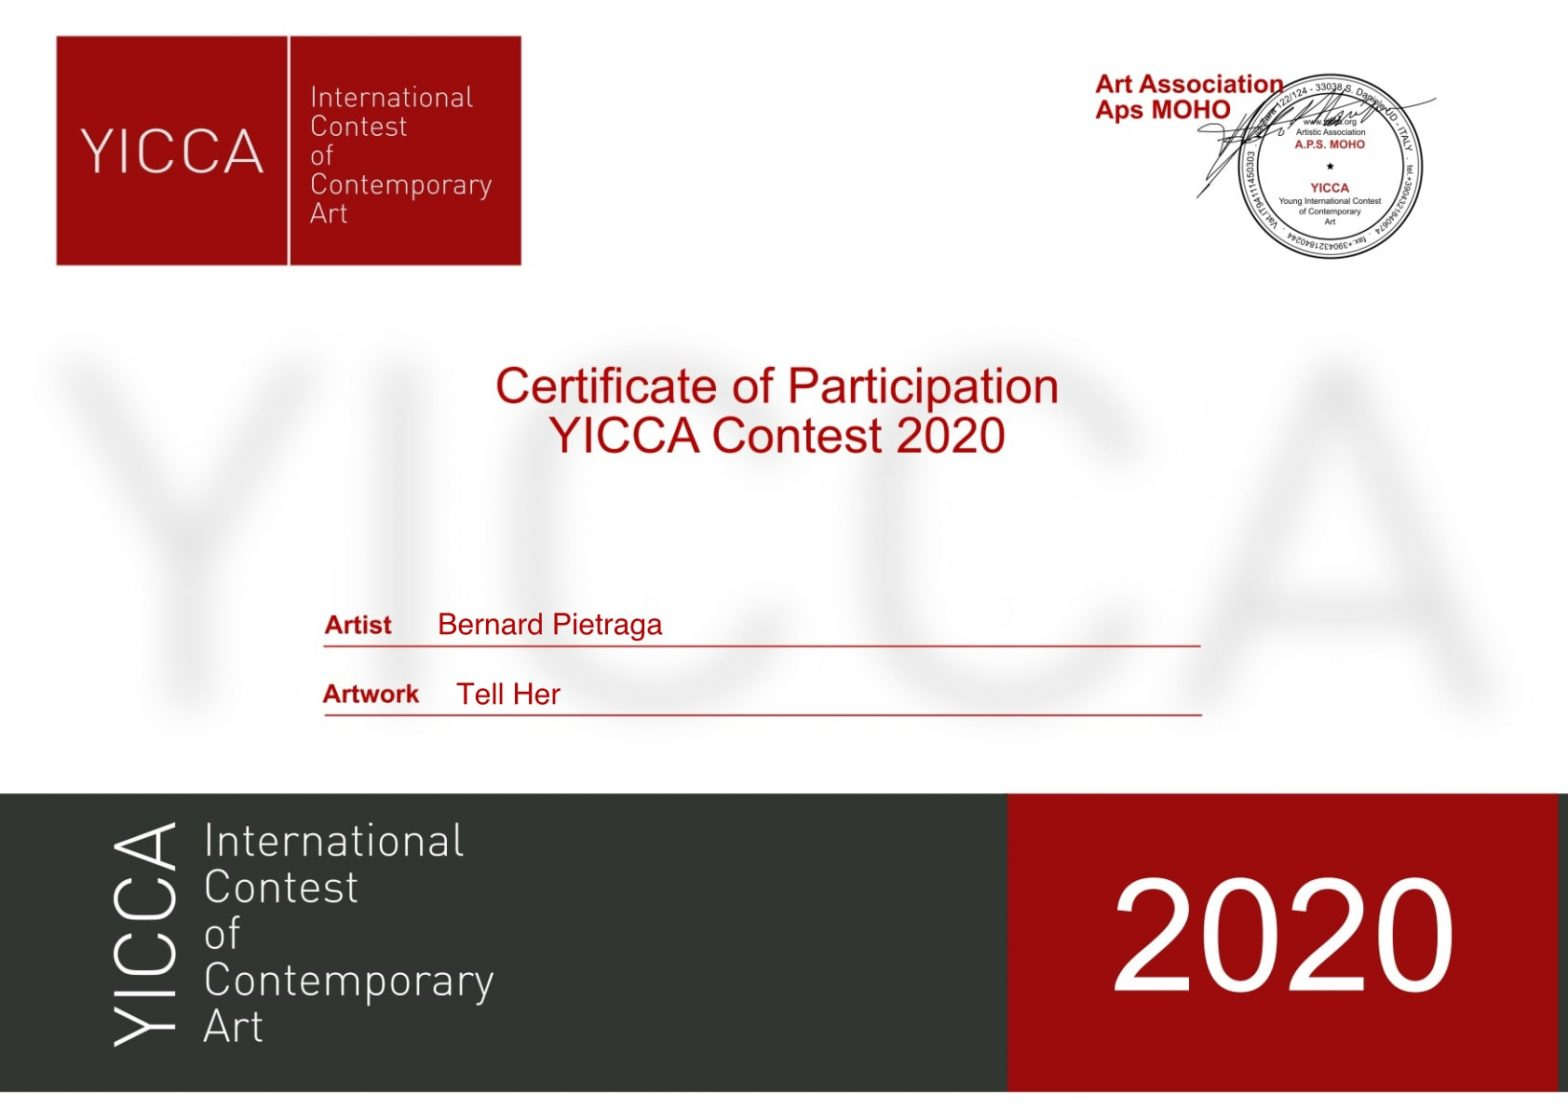 yicca international contest of contemporary art bernard pietraga certificate